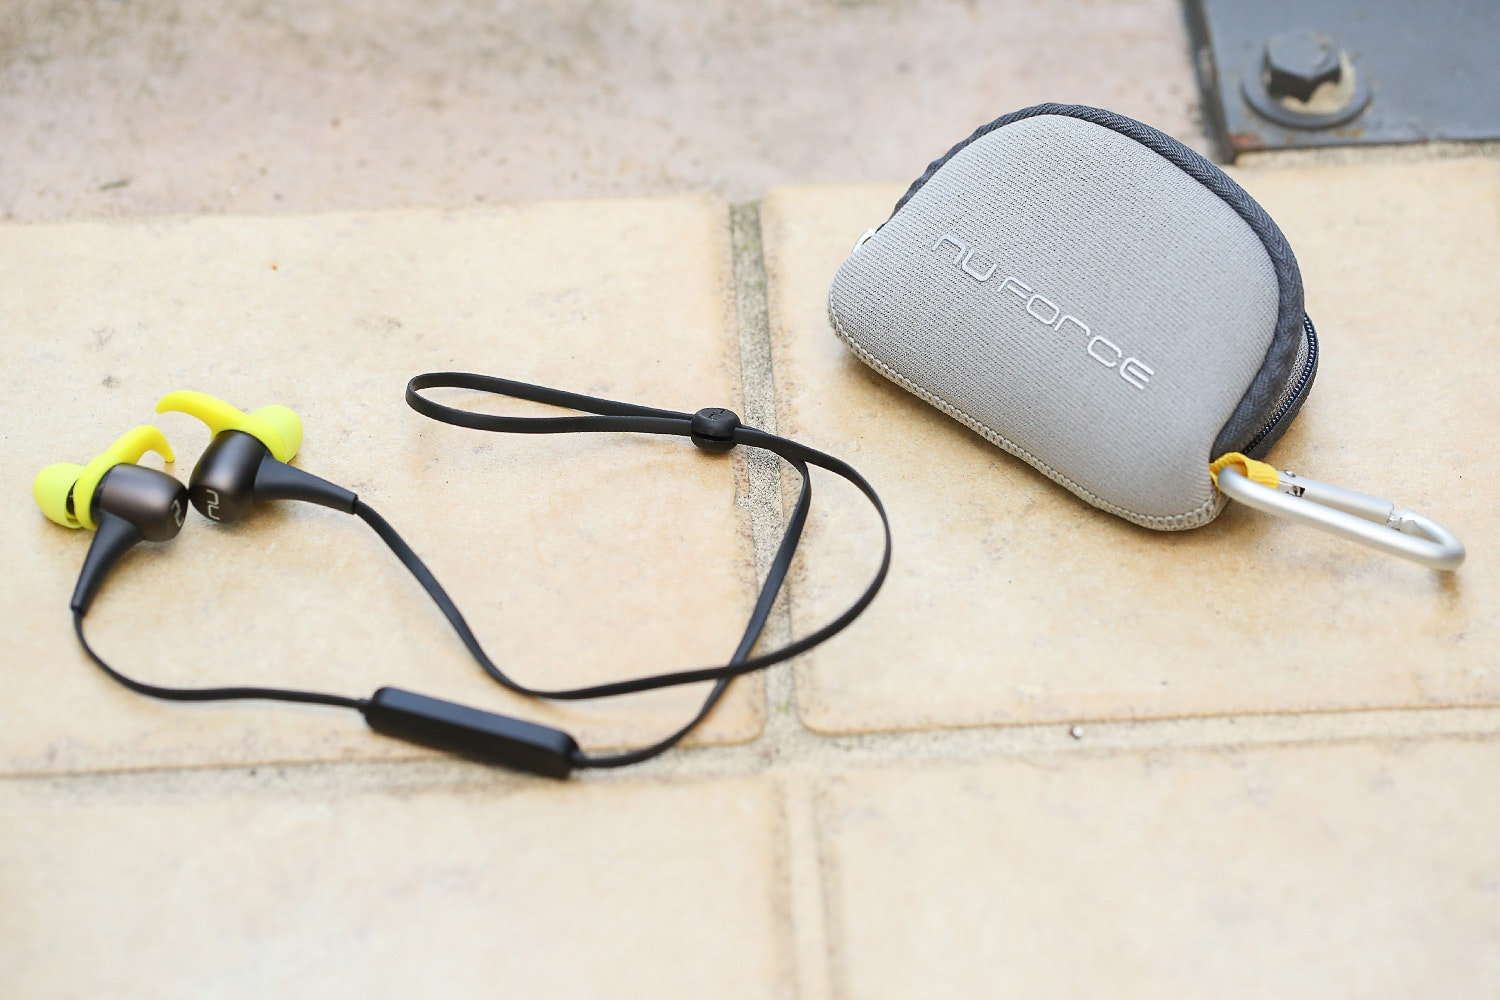 NuForce BE Sport3 Bluetooth IEMs